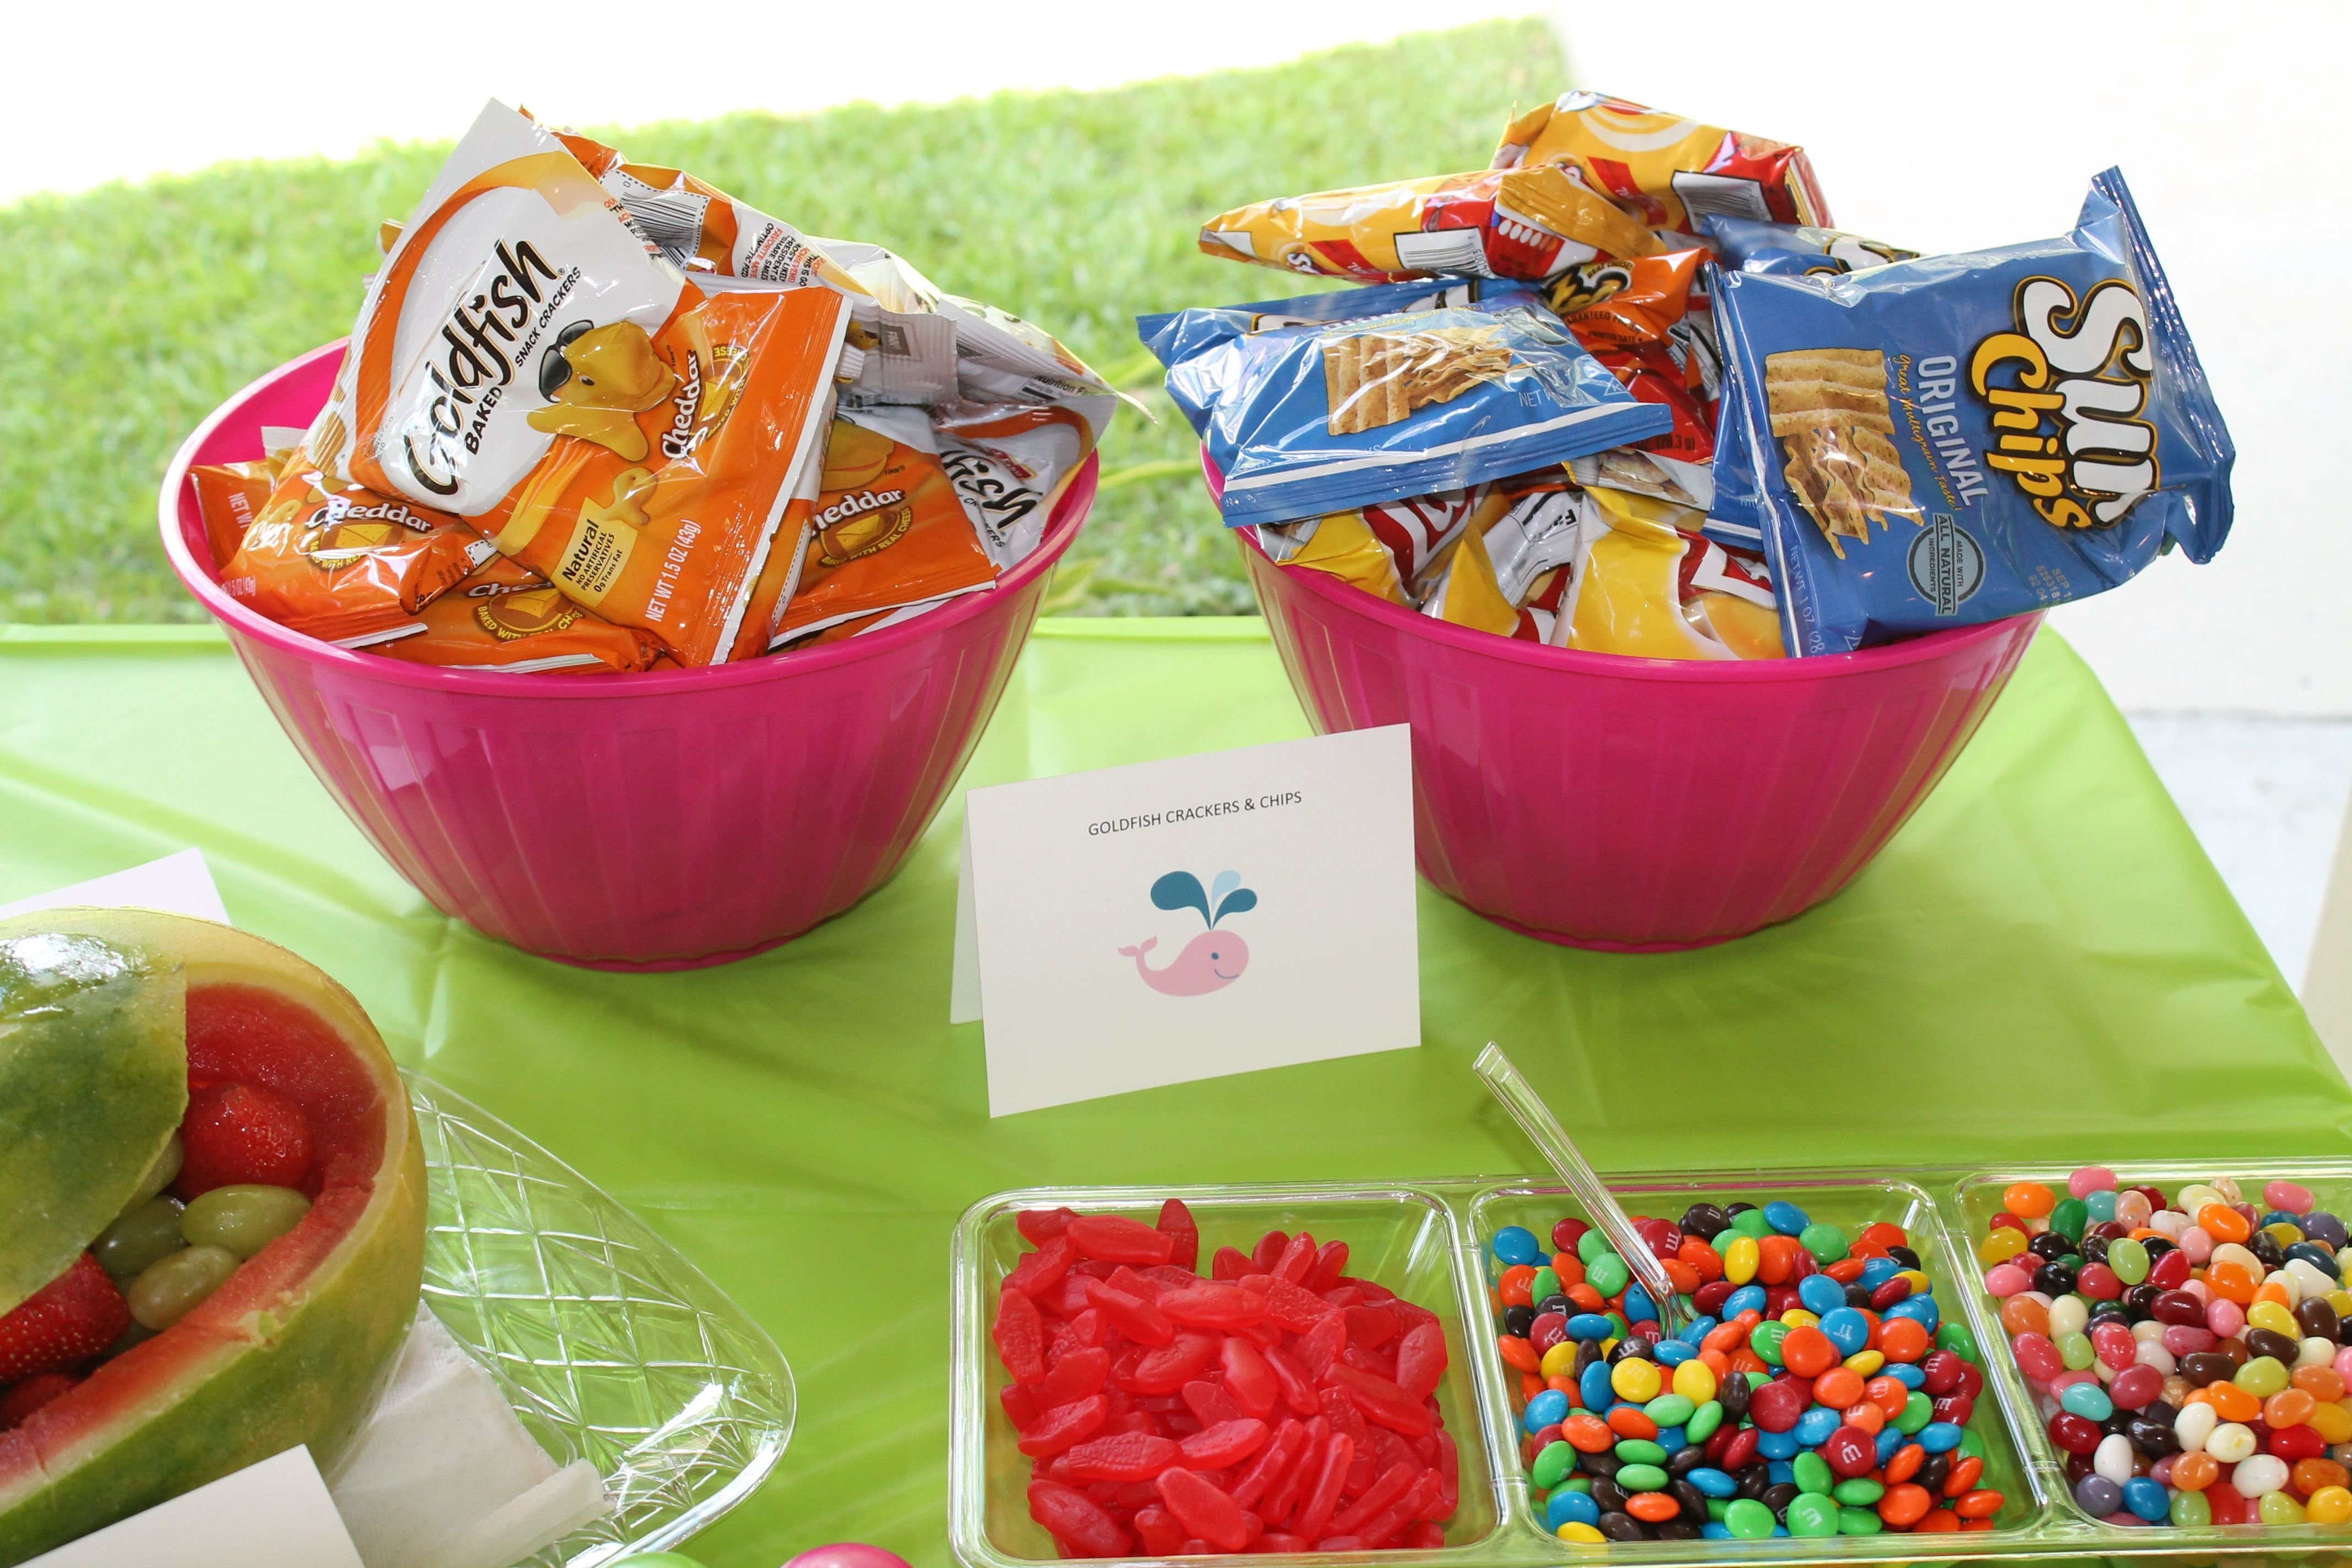 10 Stylish Pool Party Food Ideas For Kids pinerin sells savannah on party ocean preppy birthday 2020